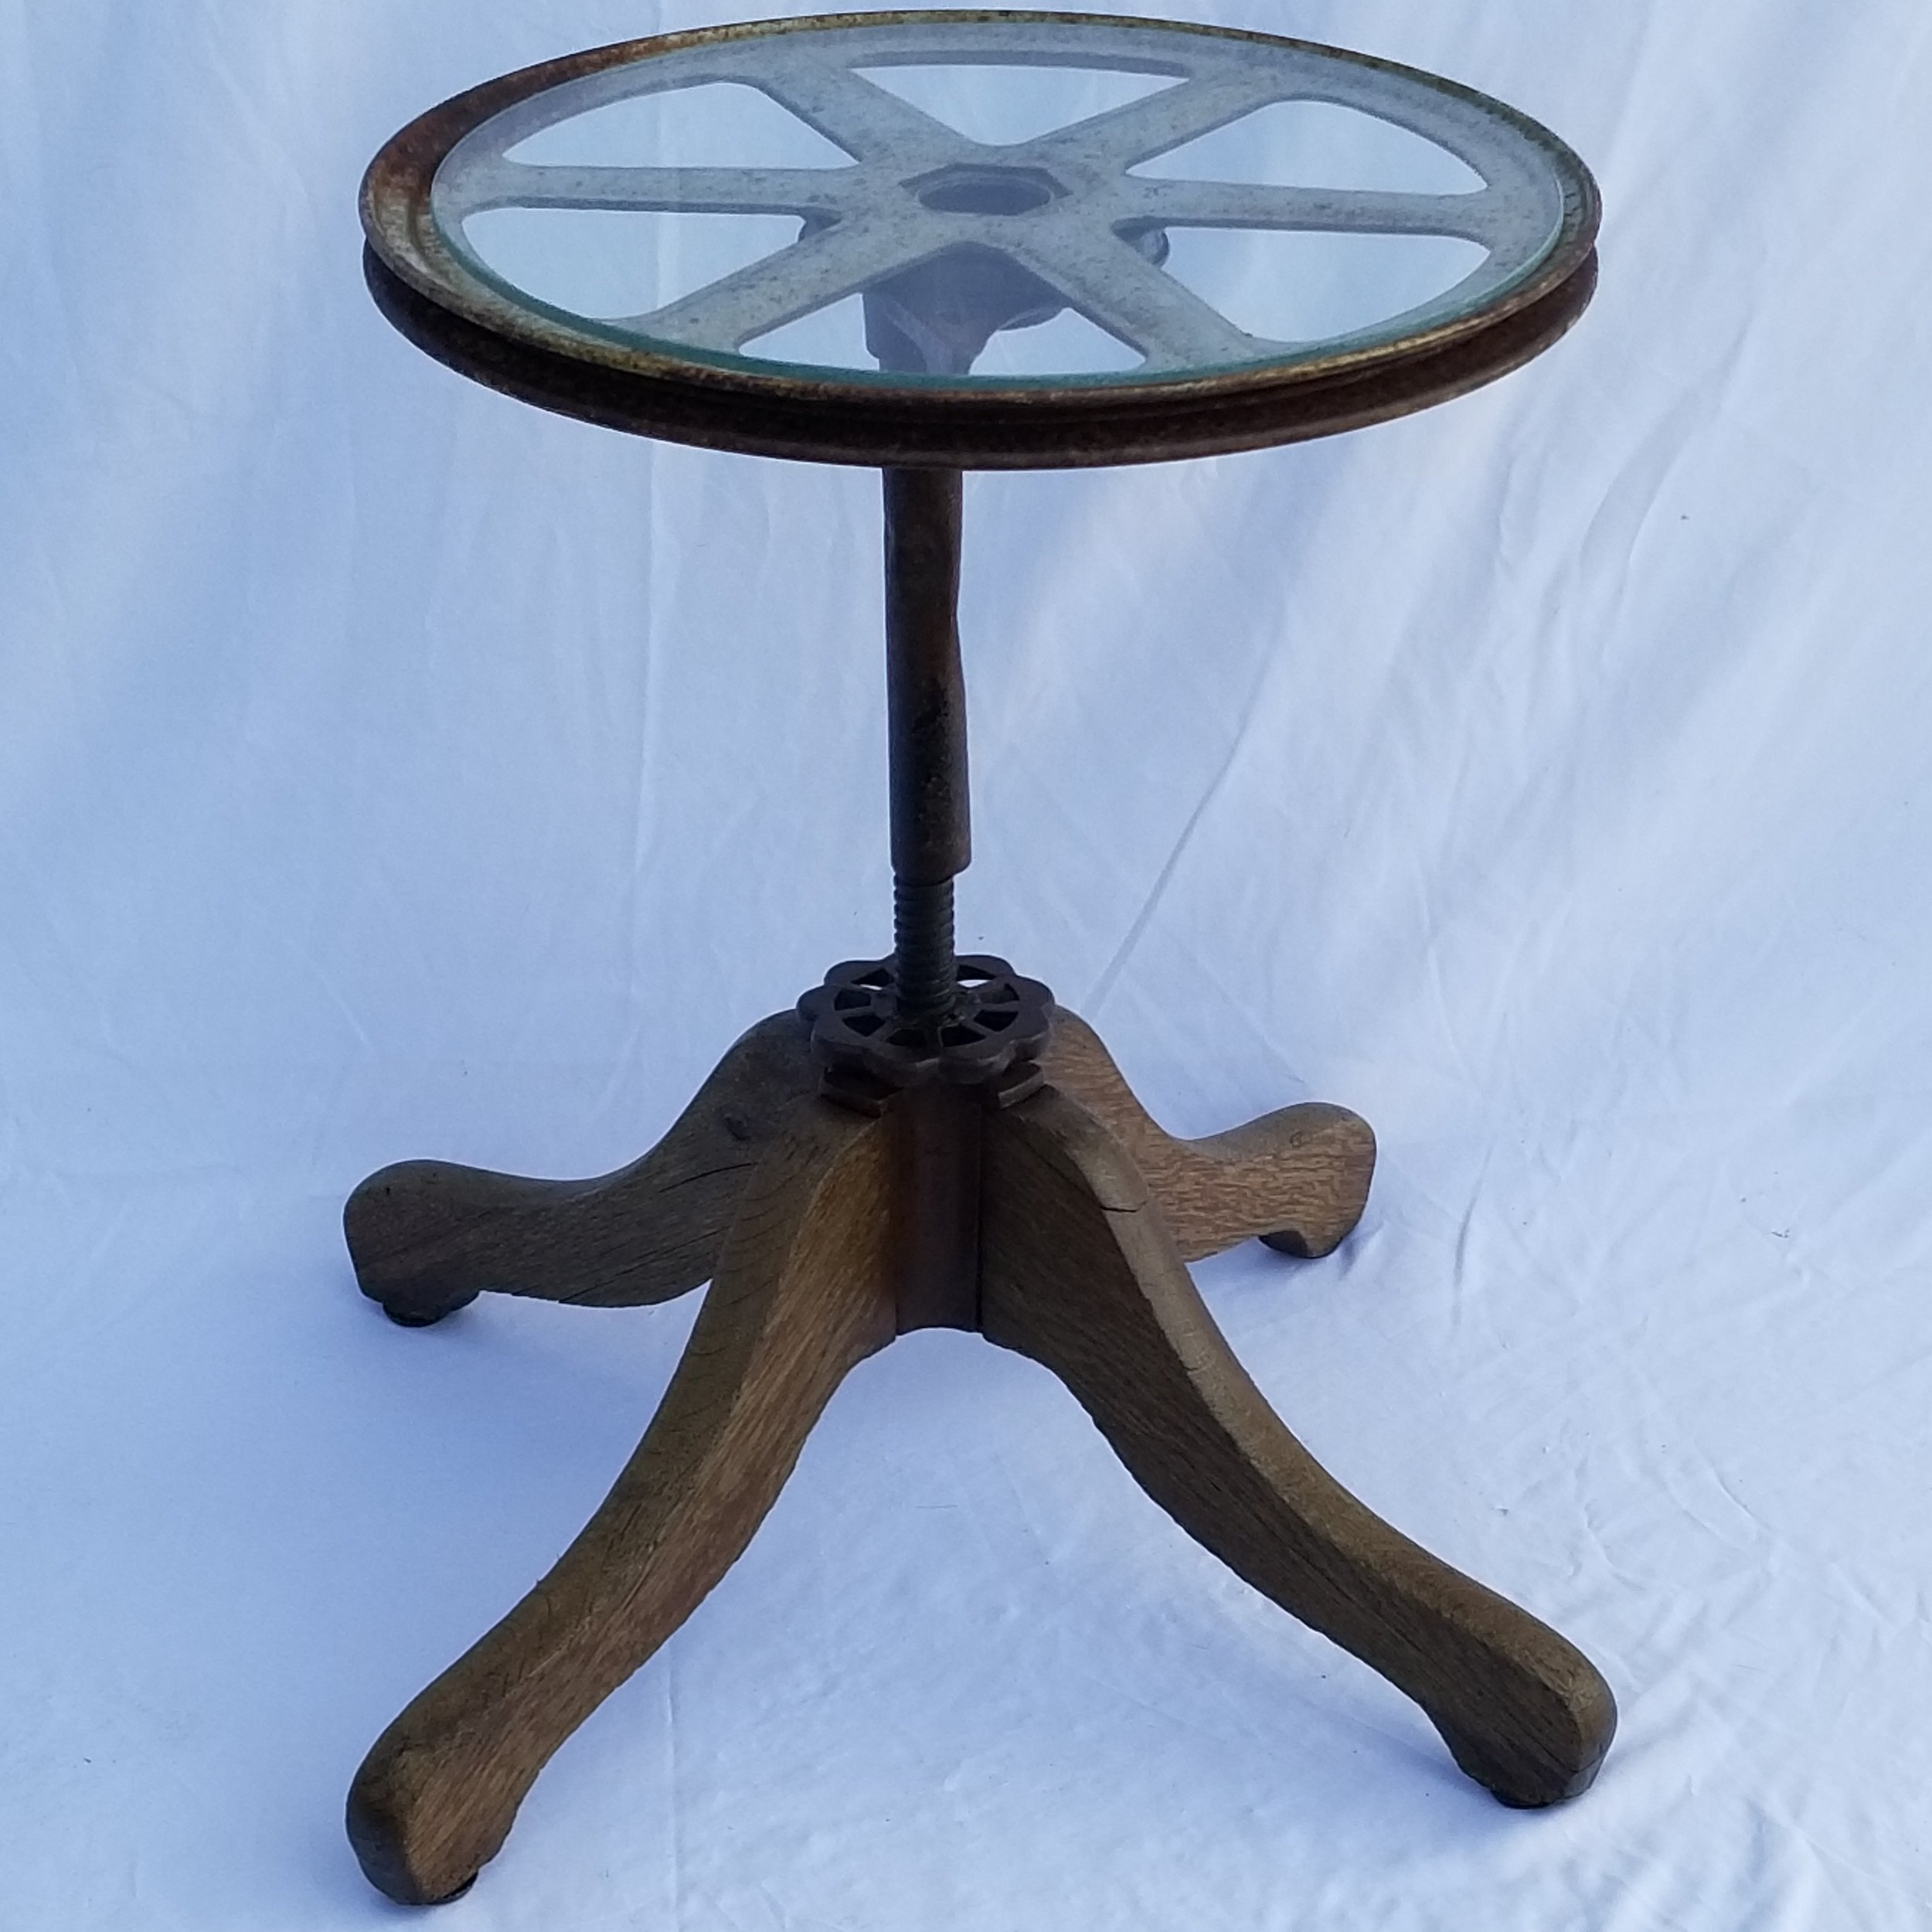 SOLD-Belted Wheel Table